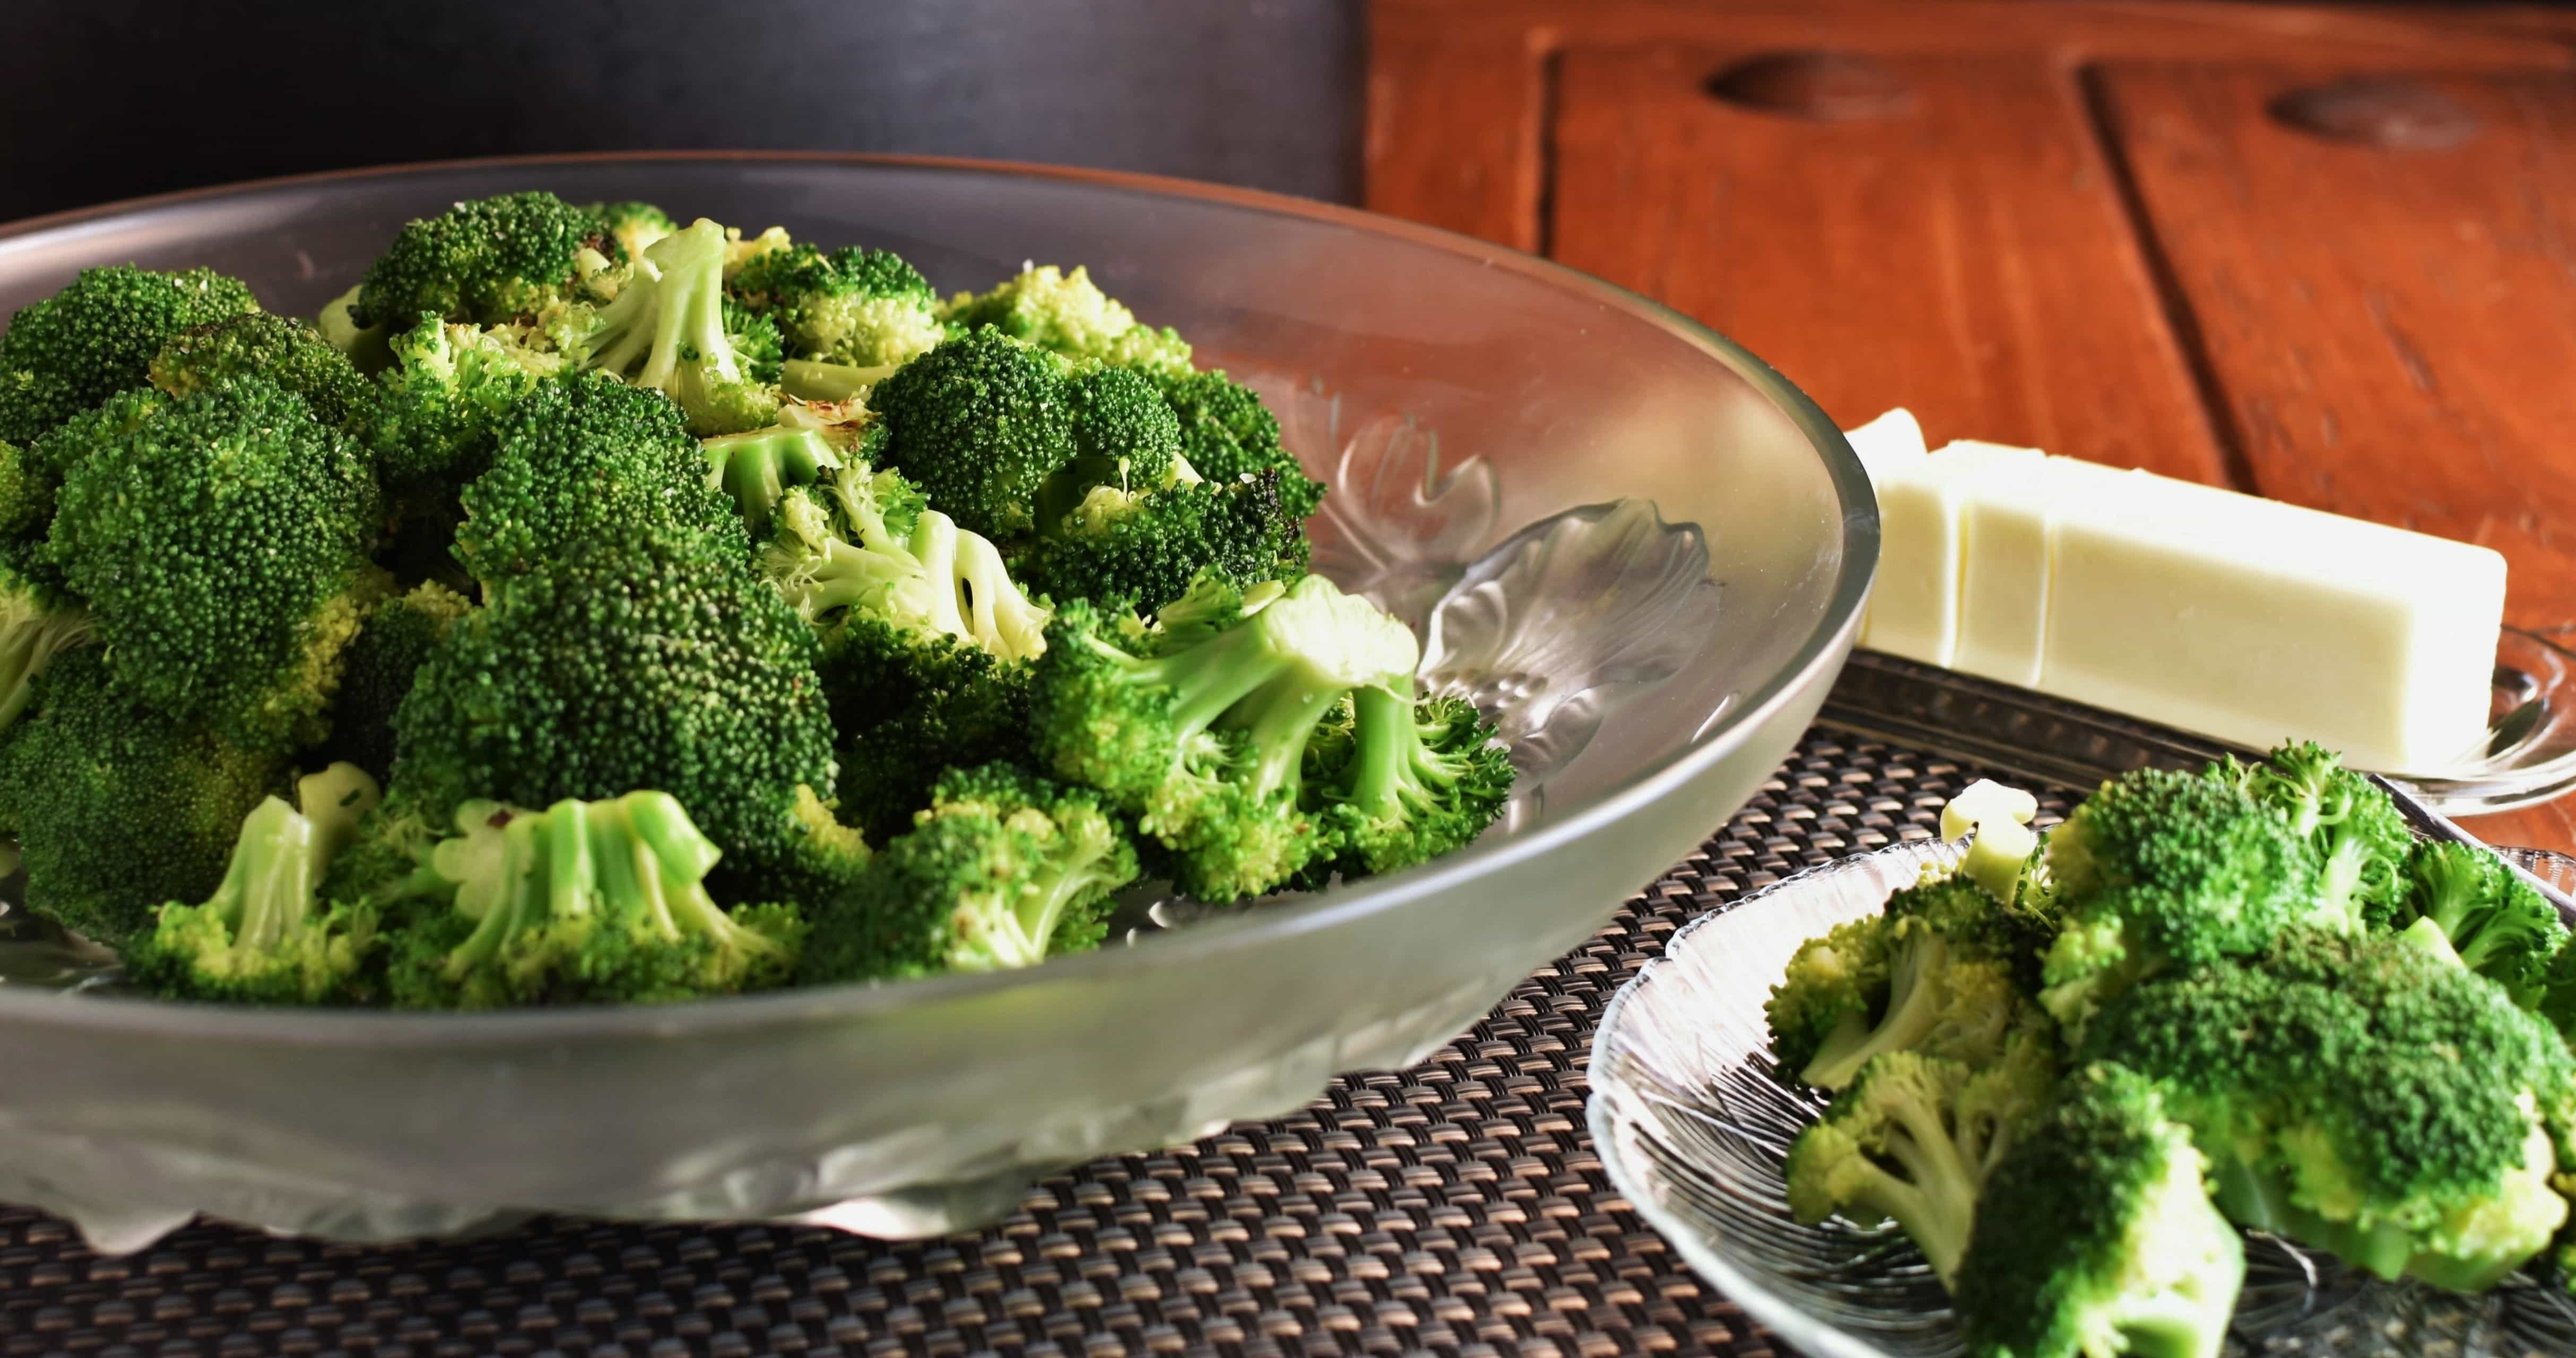 Blue apron broccoli - How To Cook Broccoli The Spicy Apron